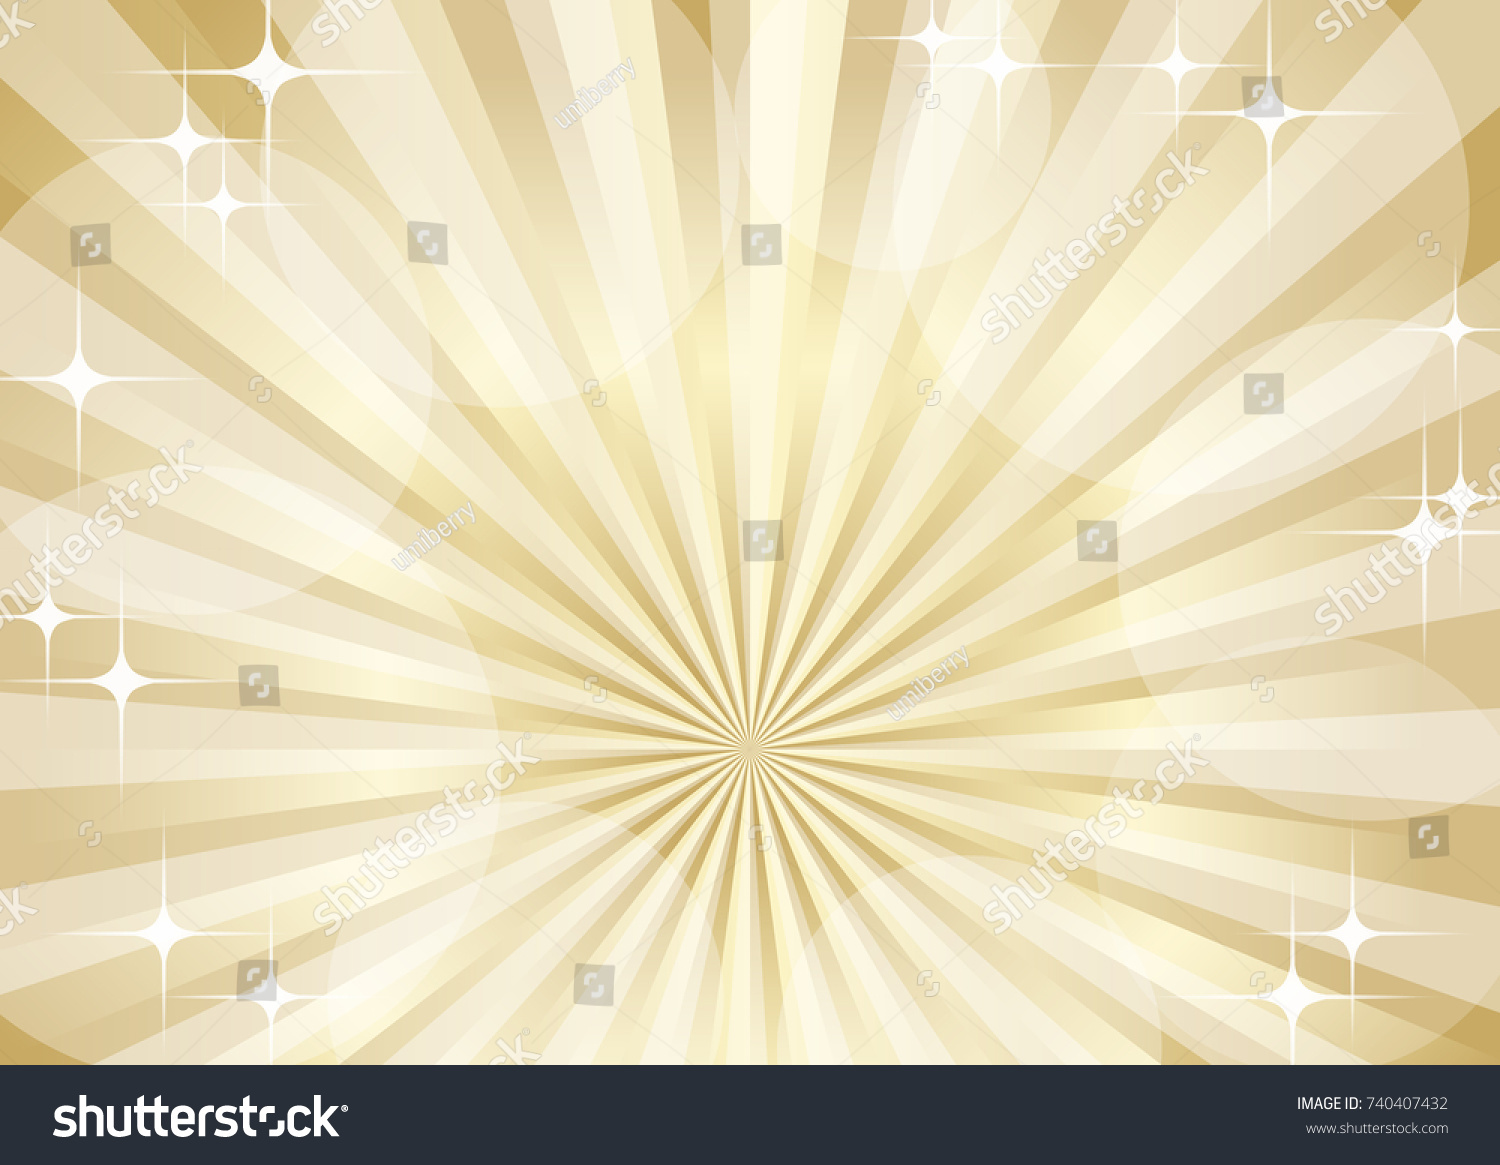 Radial Glowing Golden Background Stock Vector (Royalty Free